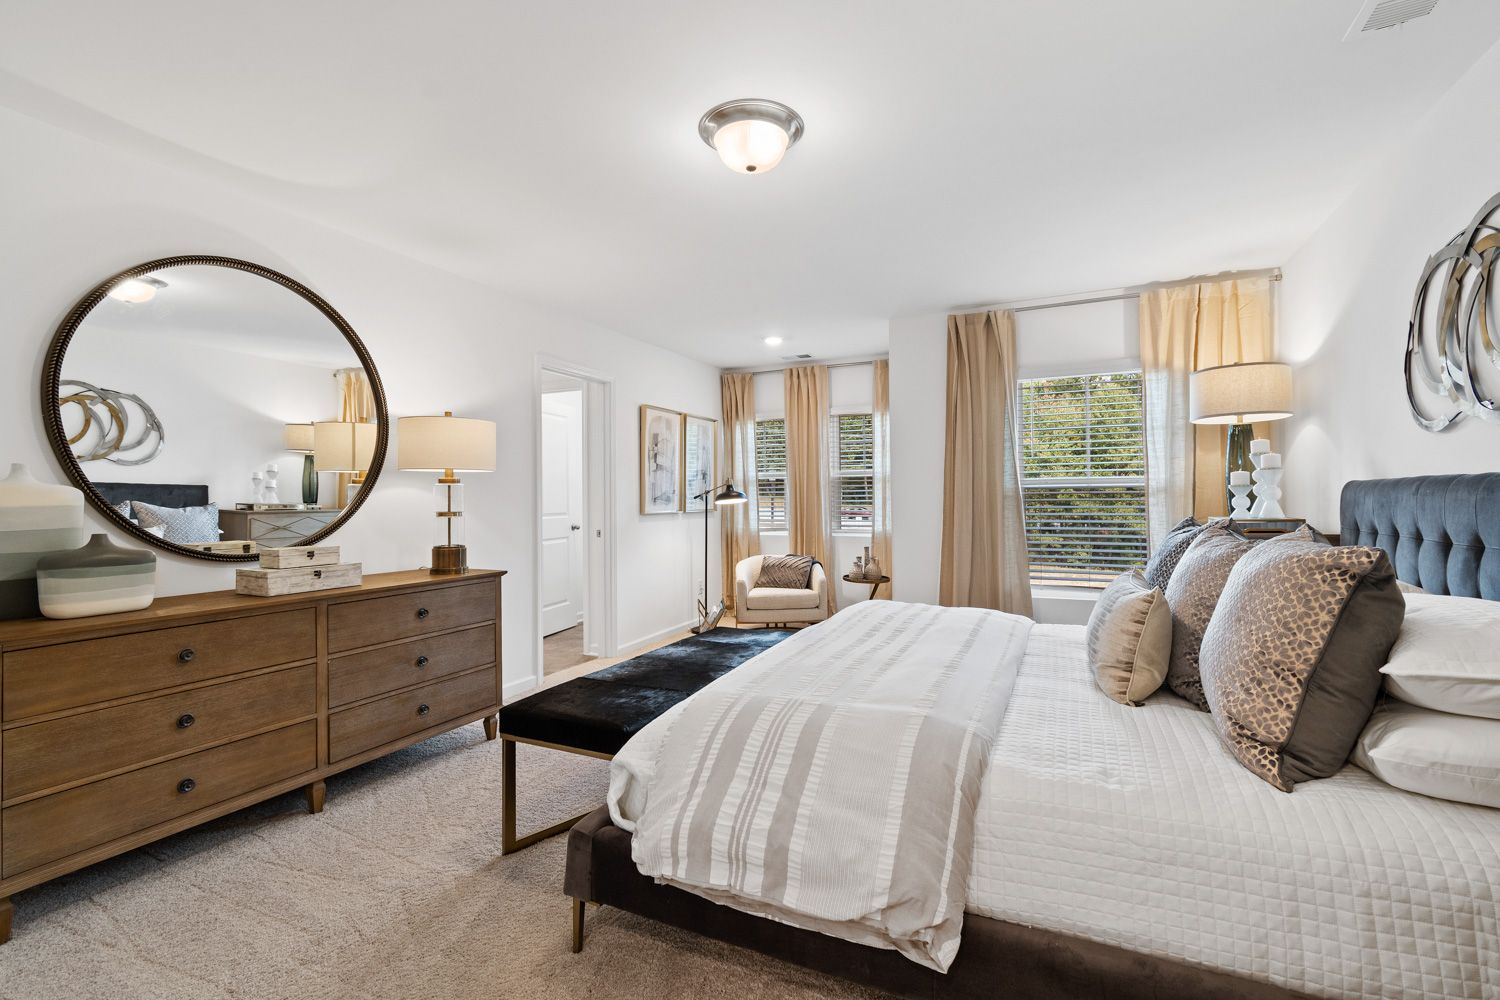 Bedroom featured in the Valetta By Ashton Woods in Atlanta, GA